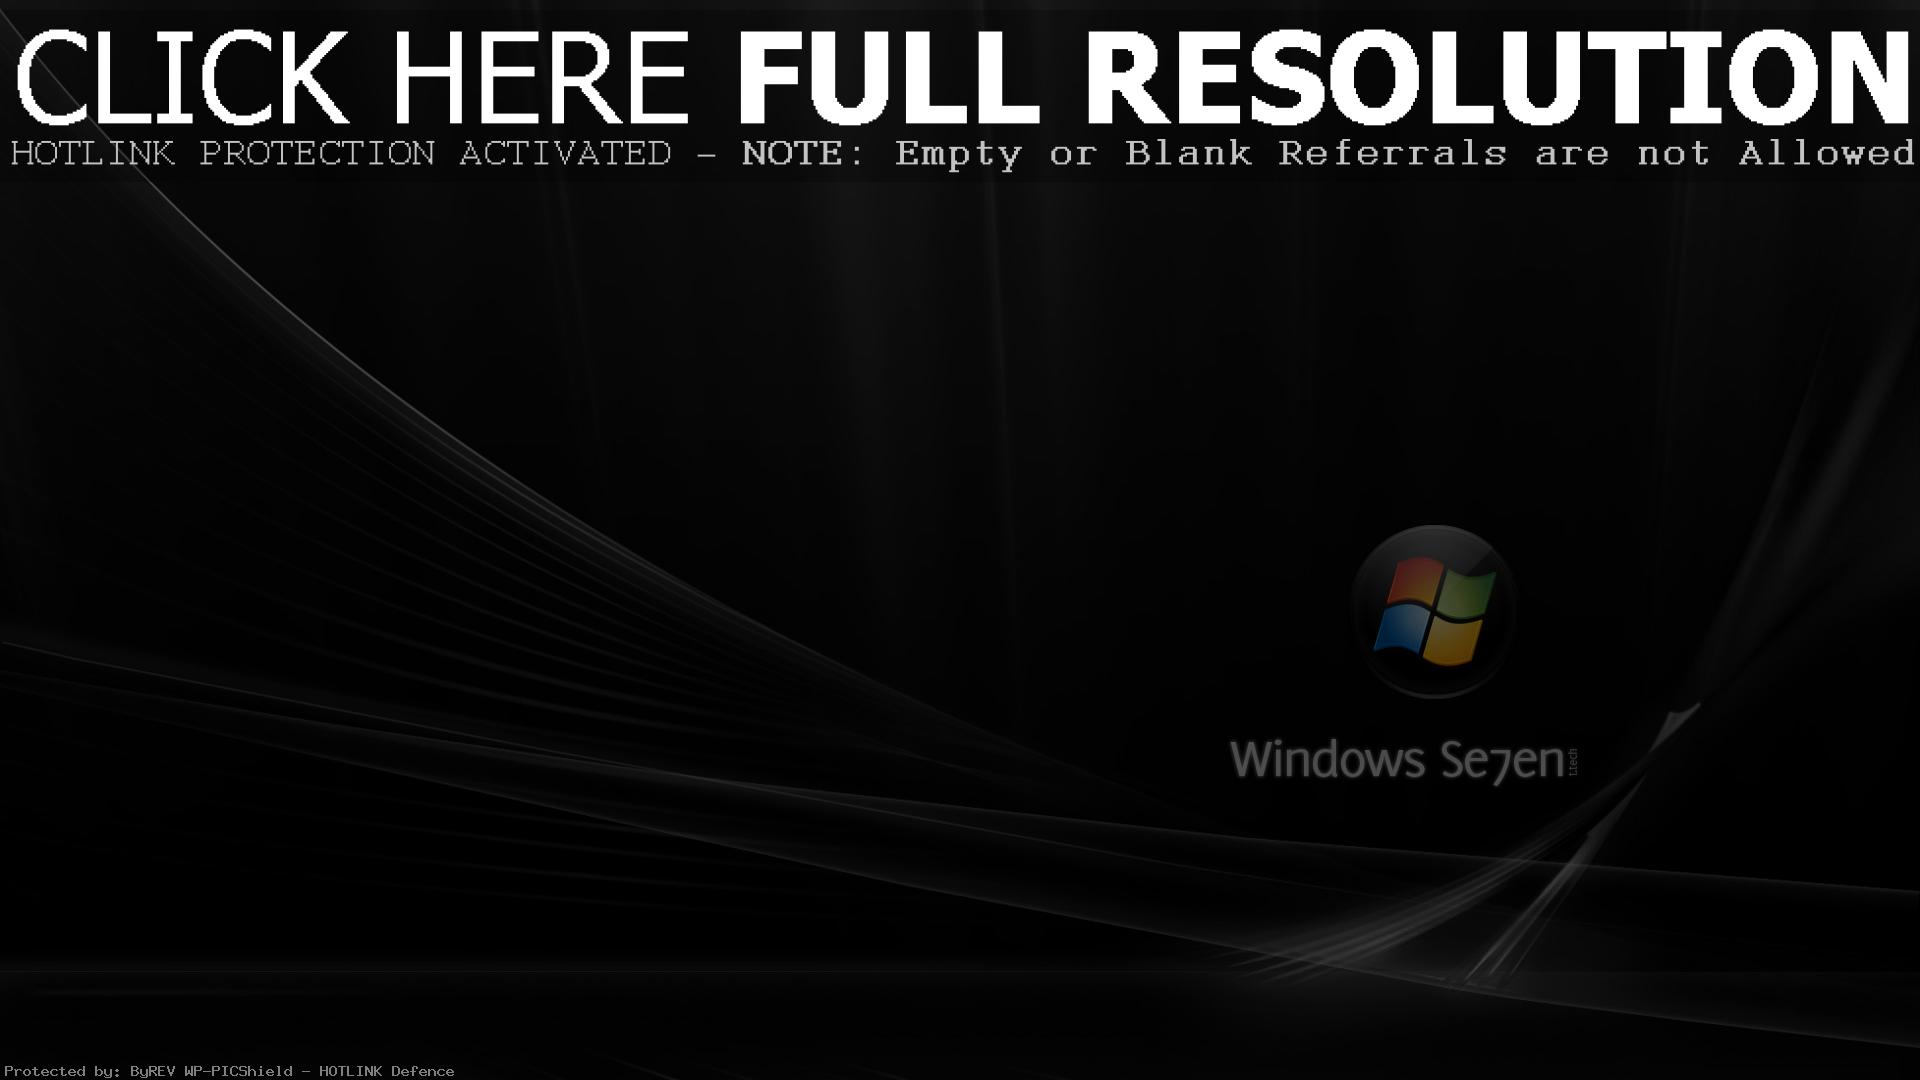 Change language in Windows 7 Nothing on the screen except